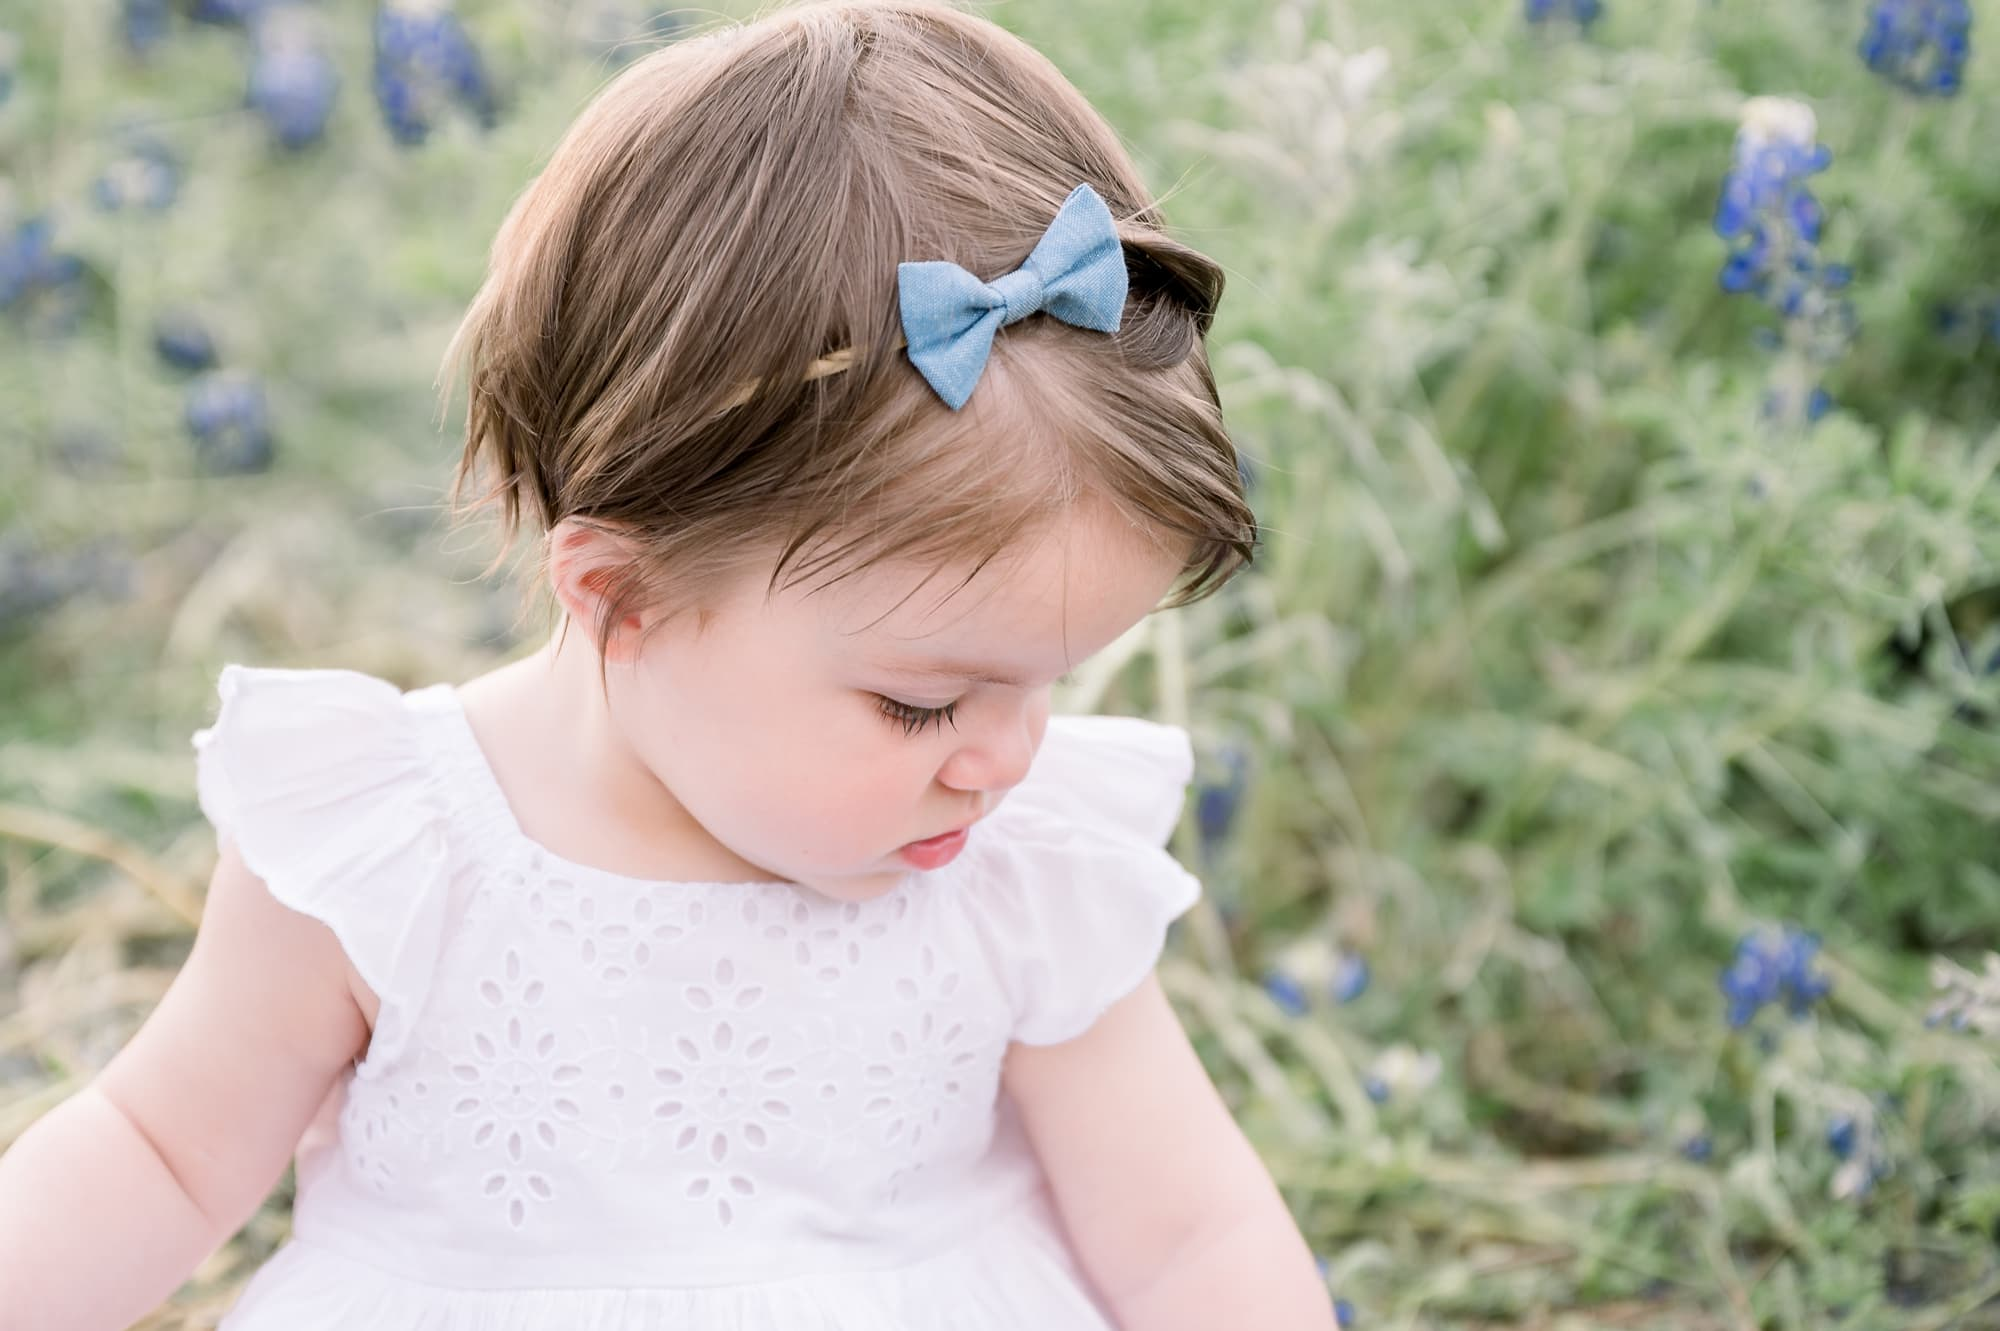 Closeup of baby girl wearing blue headband in field of bluebonnets. Photo by Aimee Hamilton Photography.